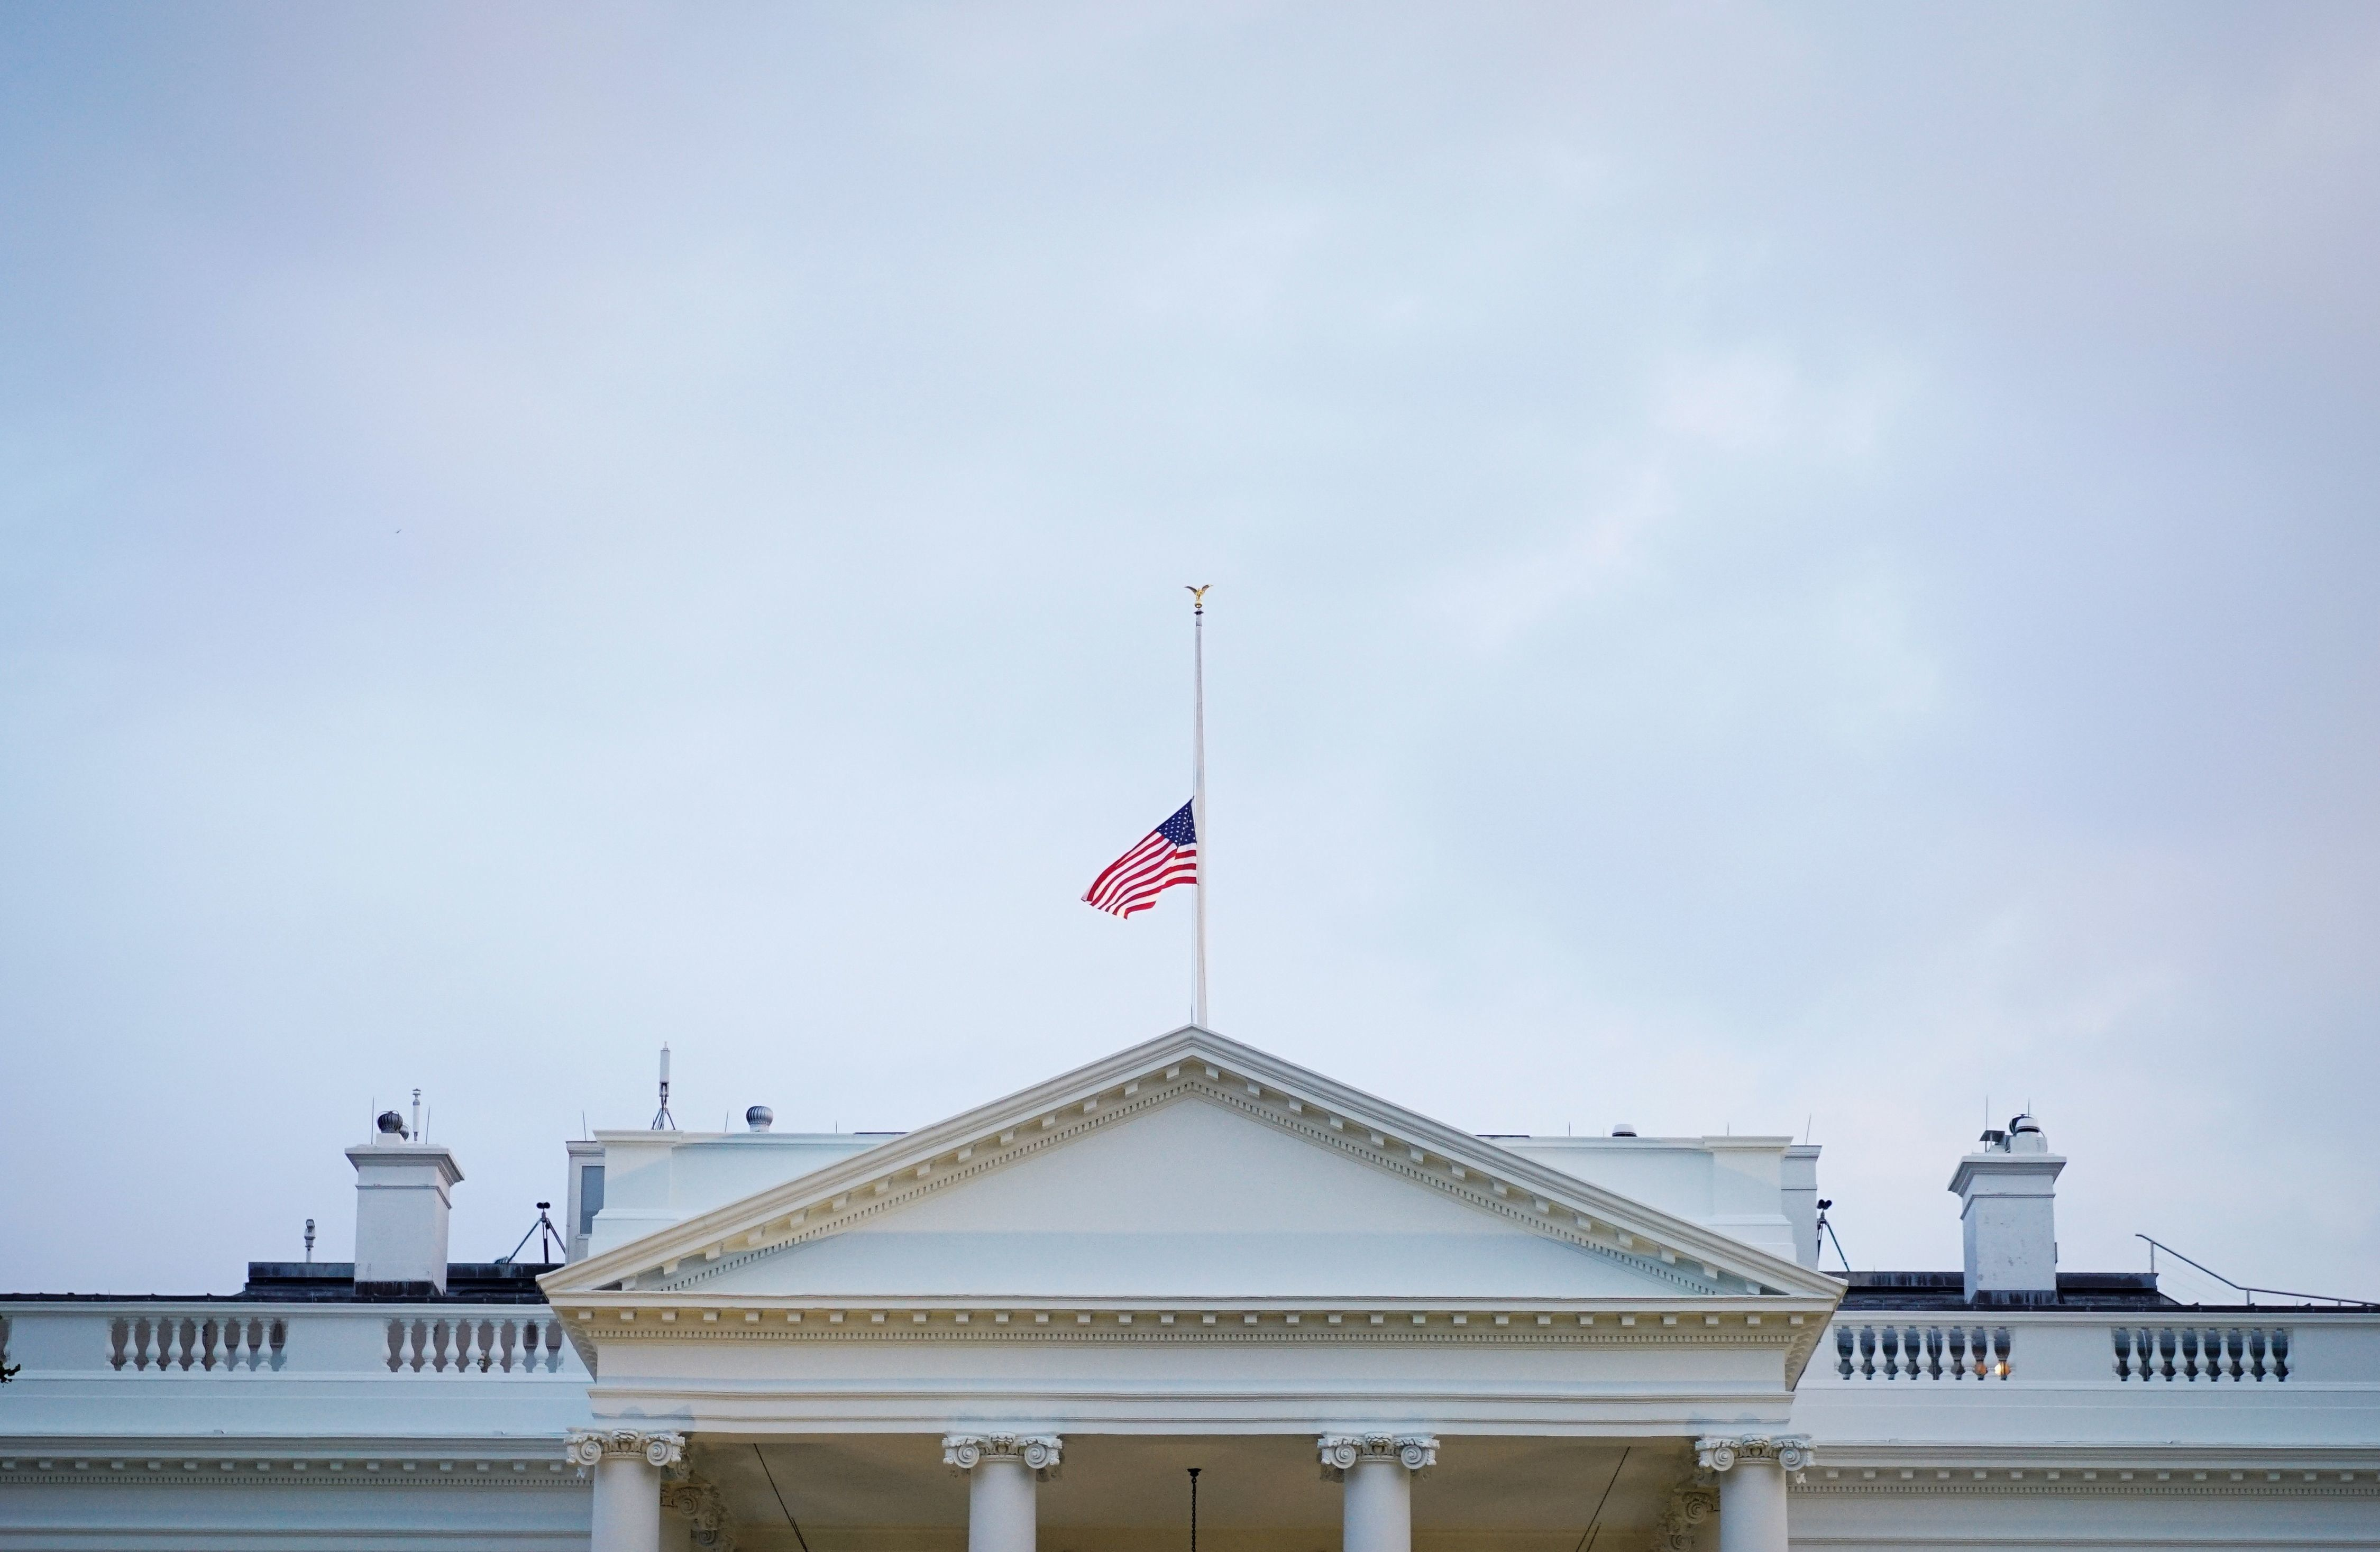 TOPSHOT - The US flag above the White House flies at half-staff in the evening in Washington, DC, on August 27, 2018. - Under fire for what critics said was a lack of respect for the late US senator John McCain, President Donald Trump issued a formal proclamation about the lawmaker's death and ordered the White House flag back to half-staff. The proclamation affects the flag atop the White House and all public buildings, as well as military installations and embassies. (Photo by MANDEL NGAN / AFP)        (Photo credit should read MANDEL NGAN/AFP/Getty Images)